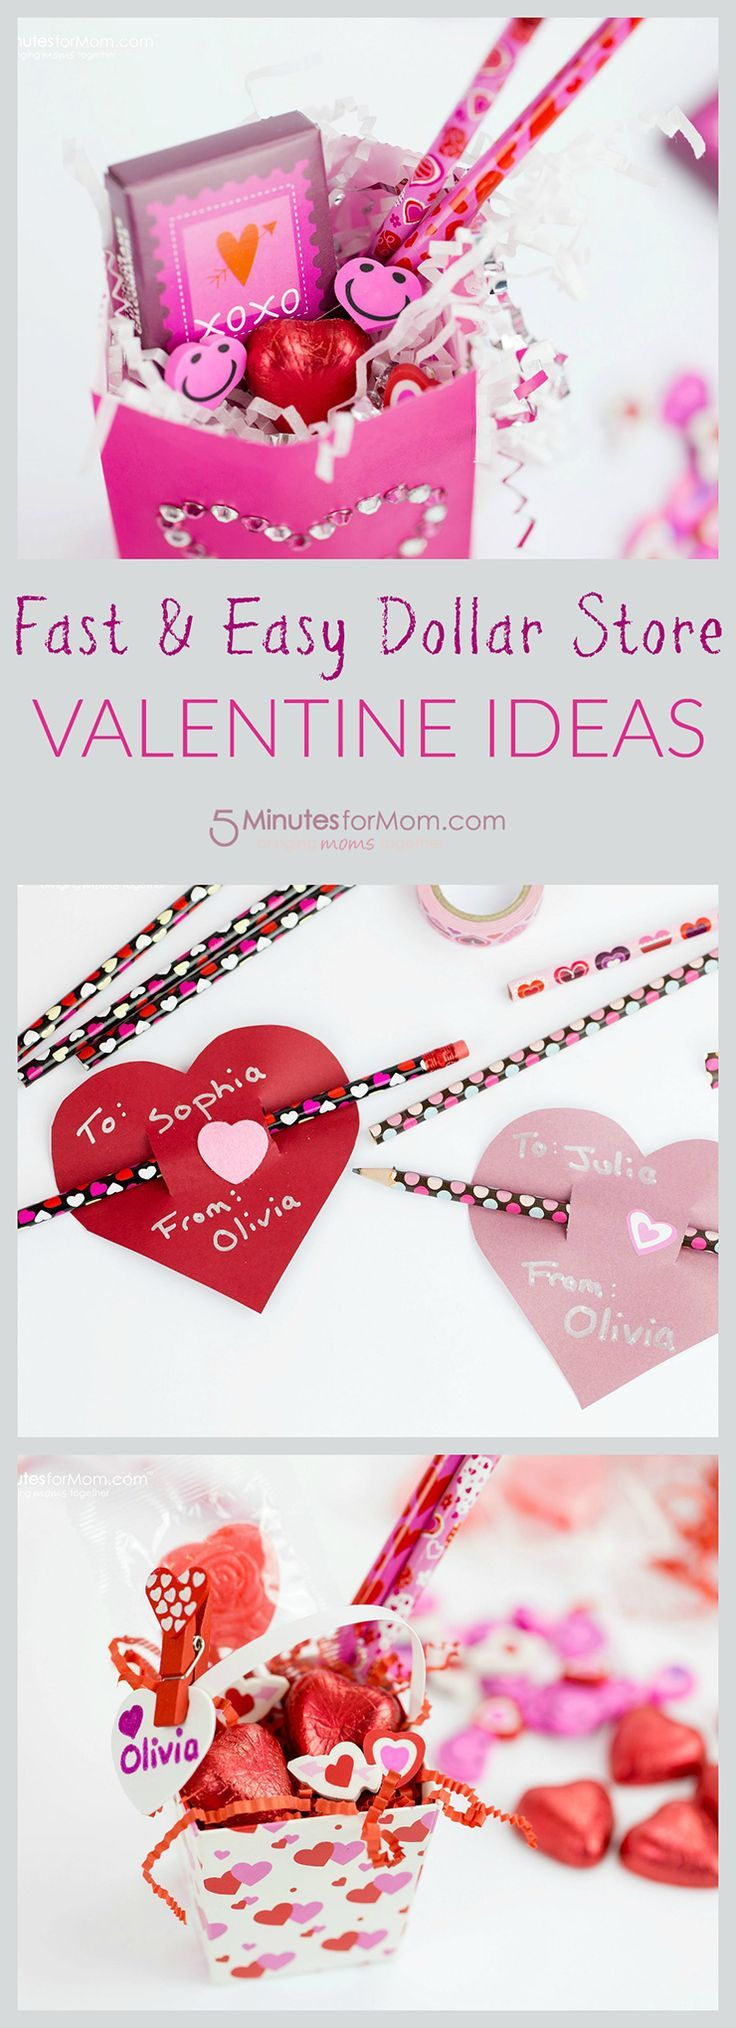 7687 best dollar store crafts images on pinterest for Easy gift ideas